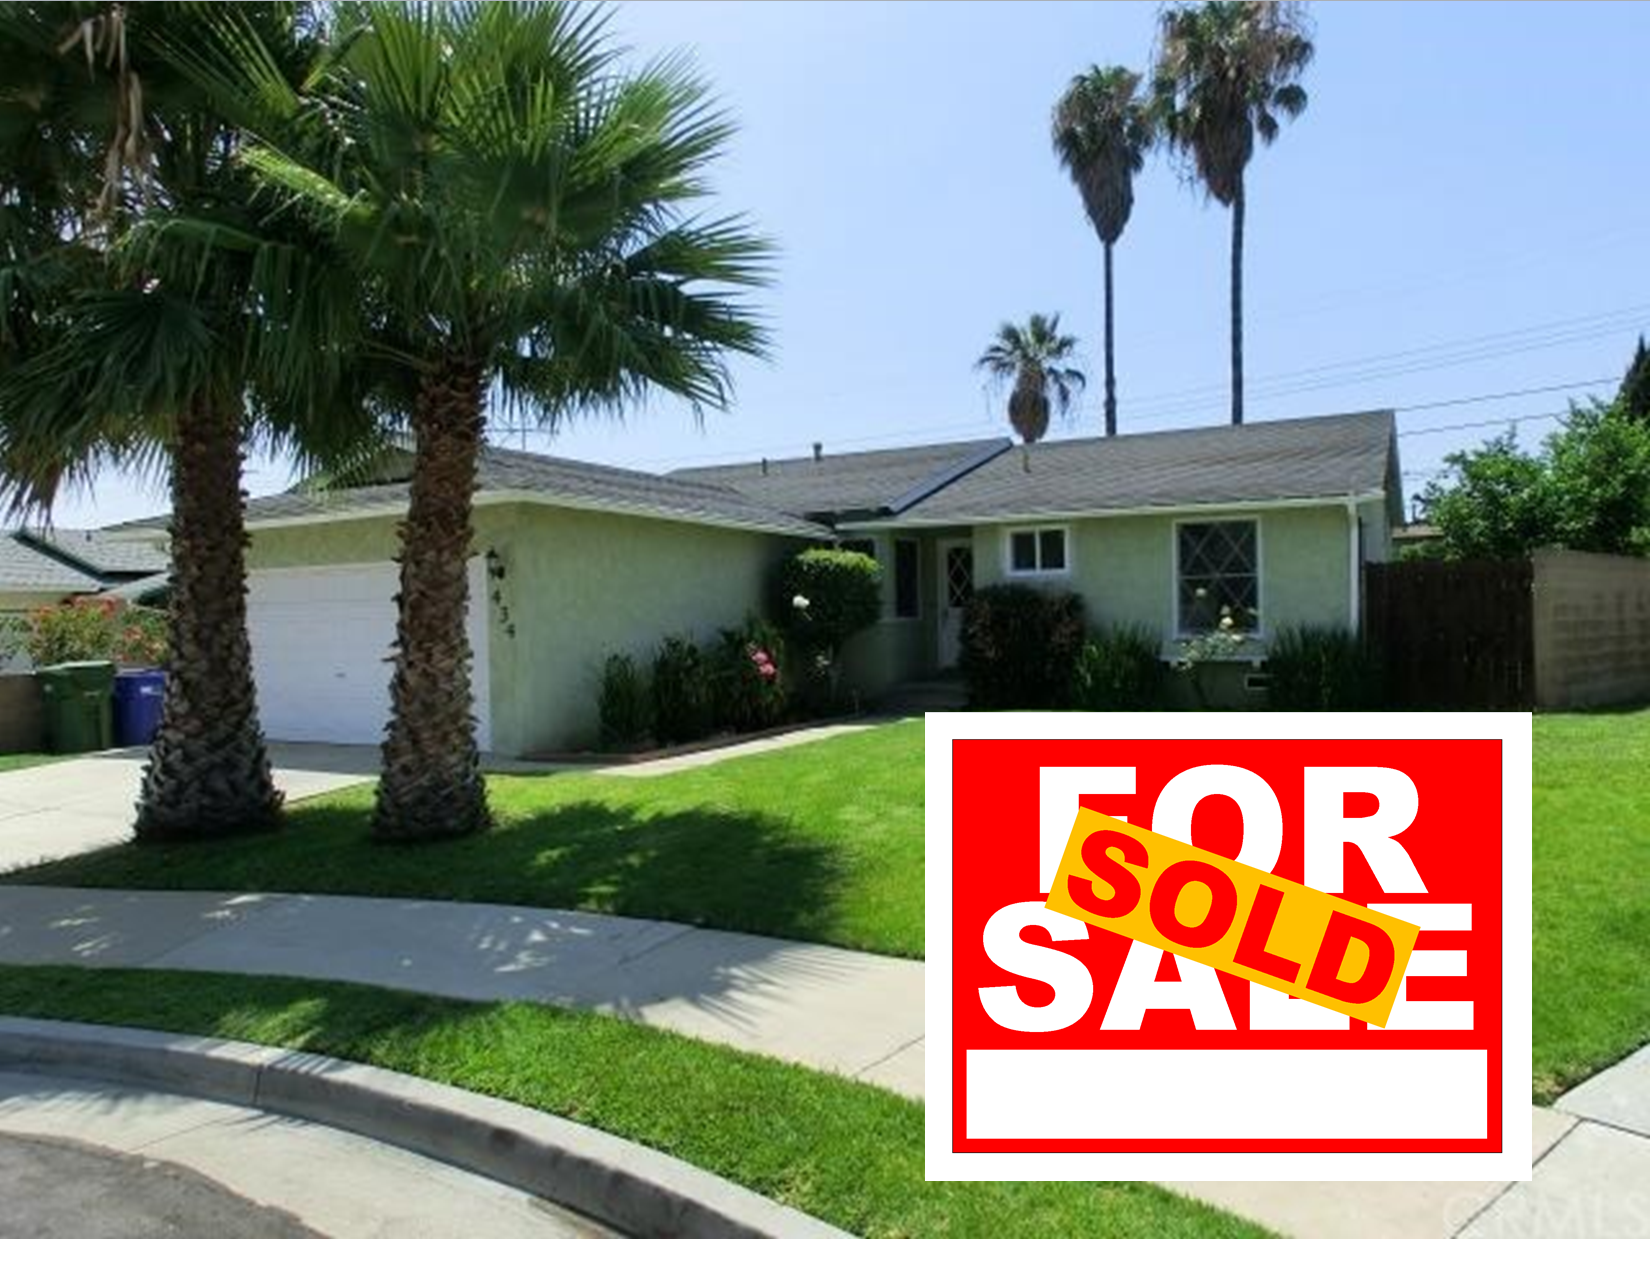 Newly acquired HOPE home in Long Beach.